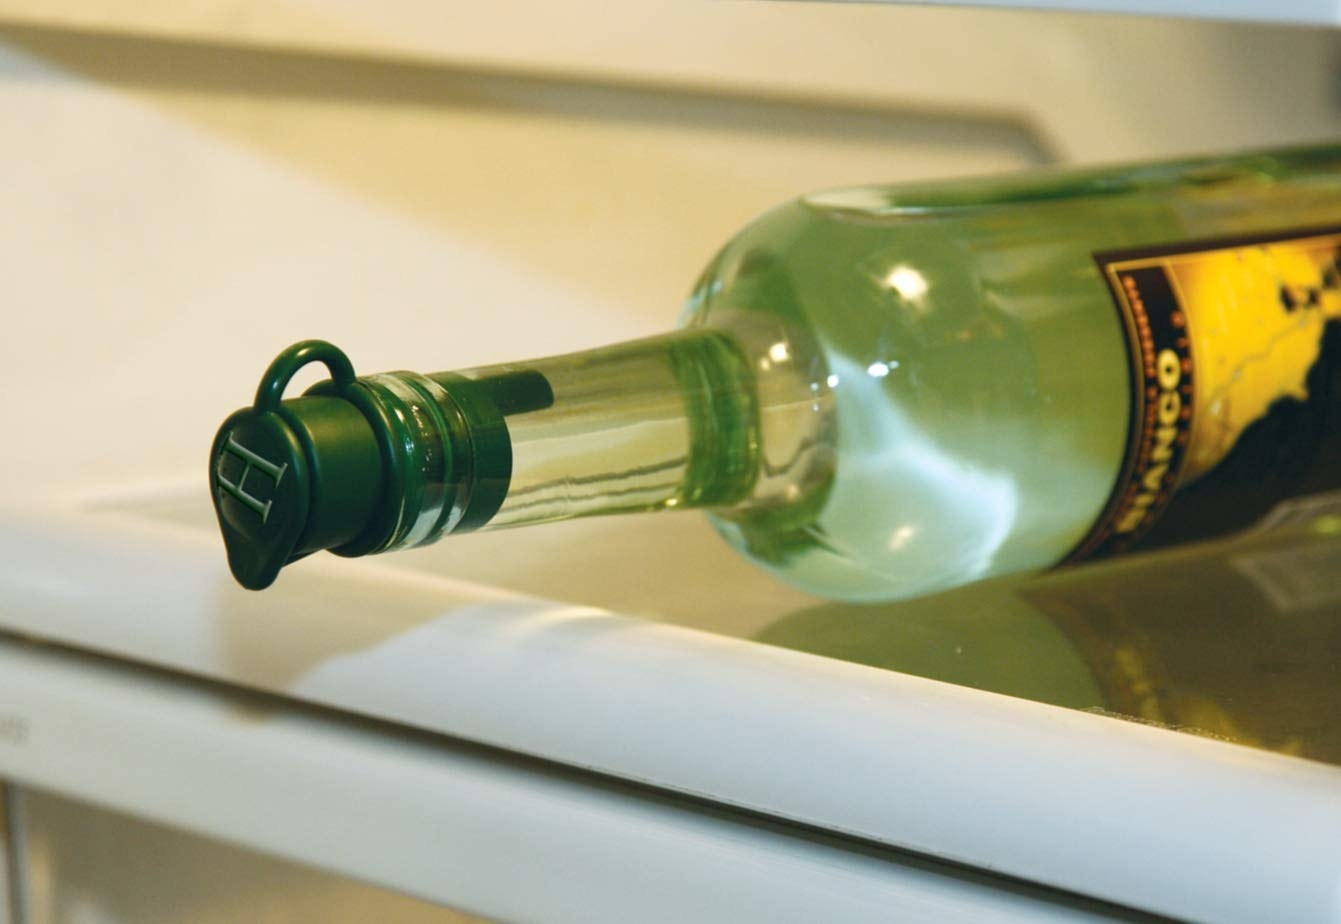 A bottle resting on its side on a fridge self with the stopper inside